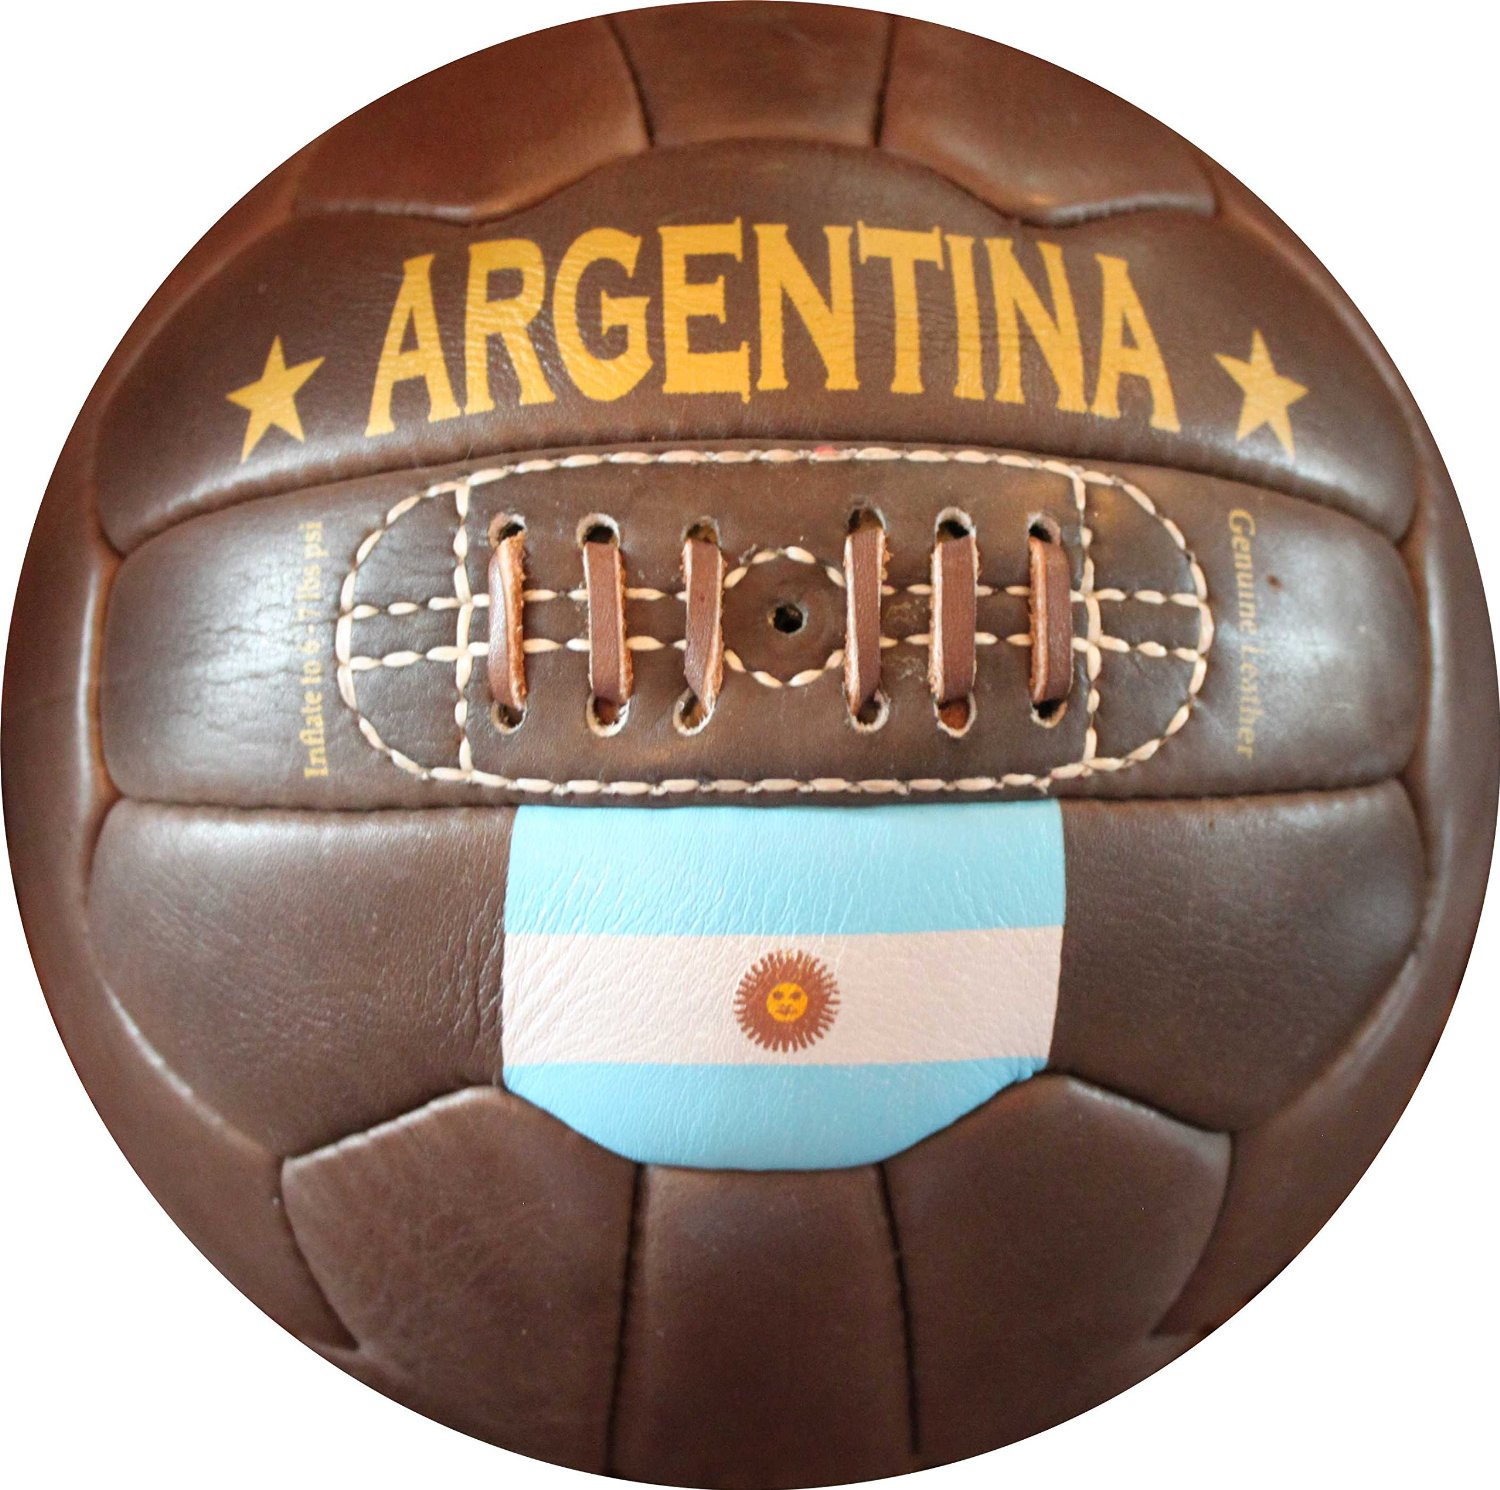 07b2be684 Get Quotations · Argentina Vintage Soccer Ball